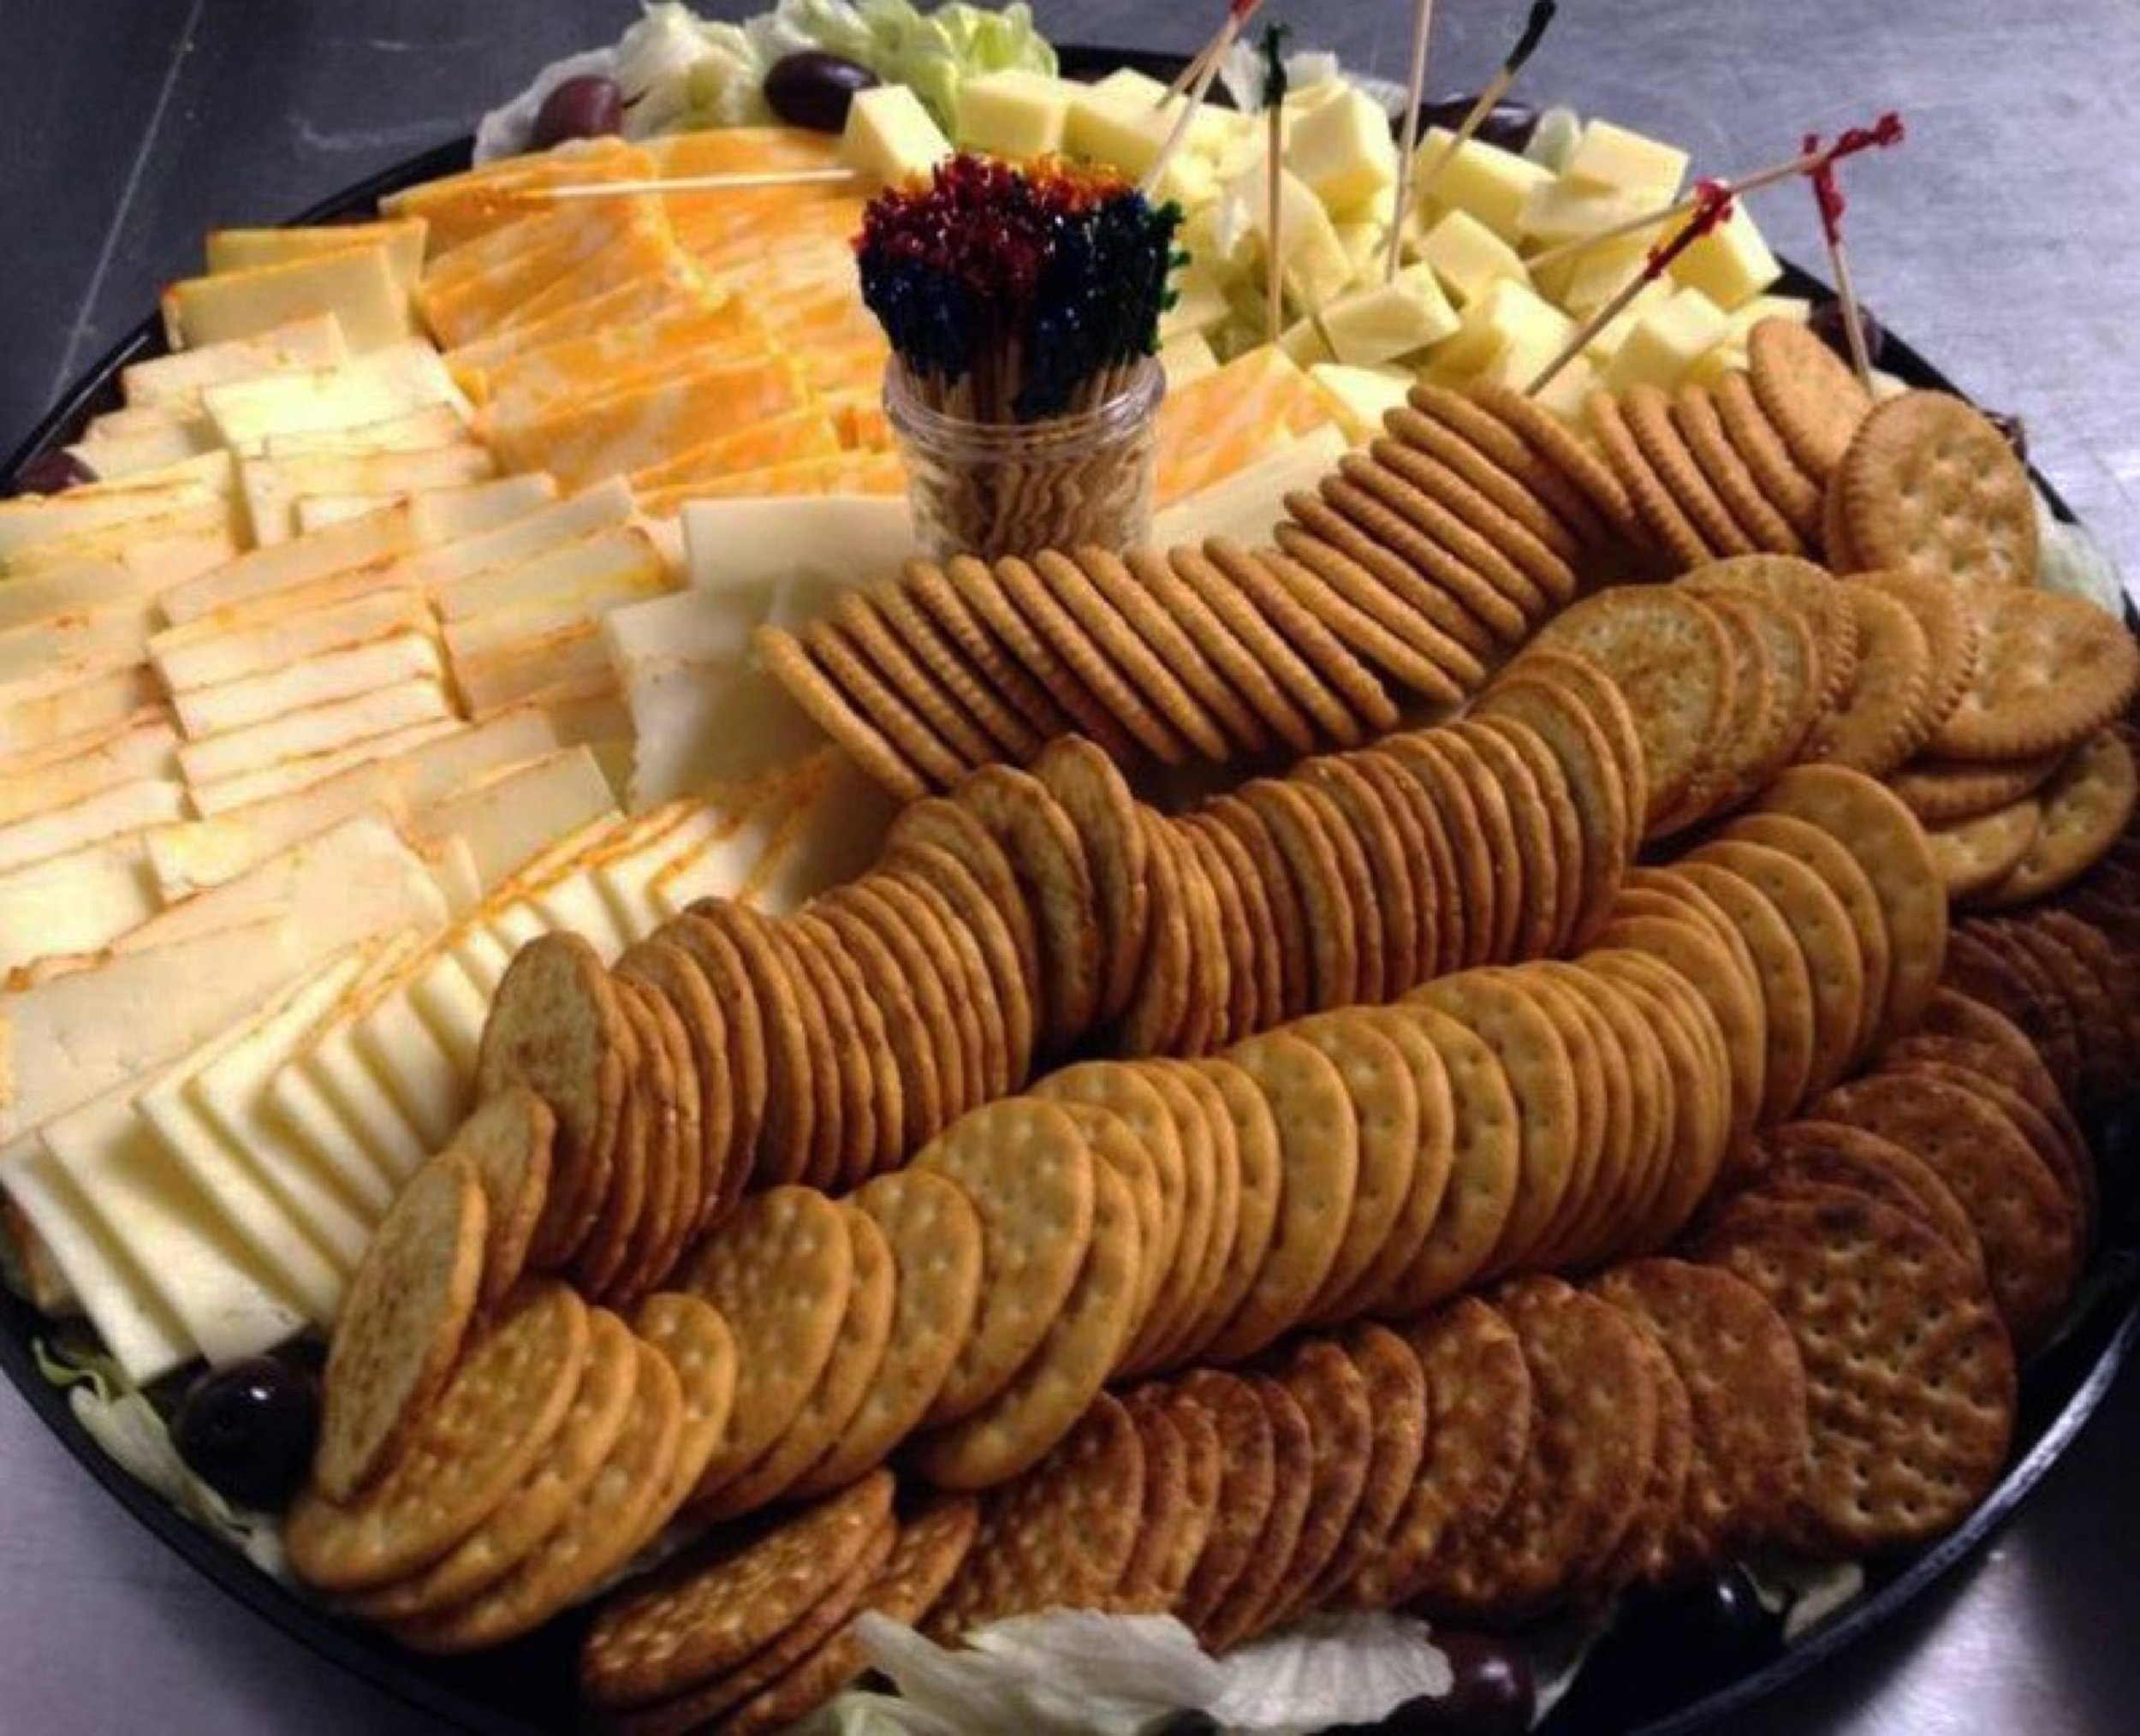 Cheese and Crackers Platter_Cleaned Up.jpg